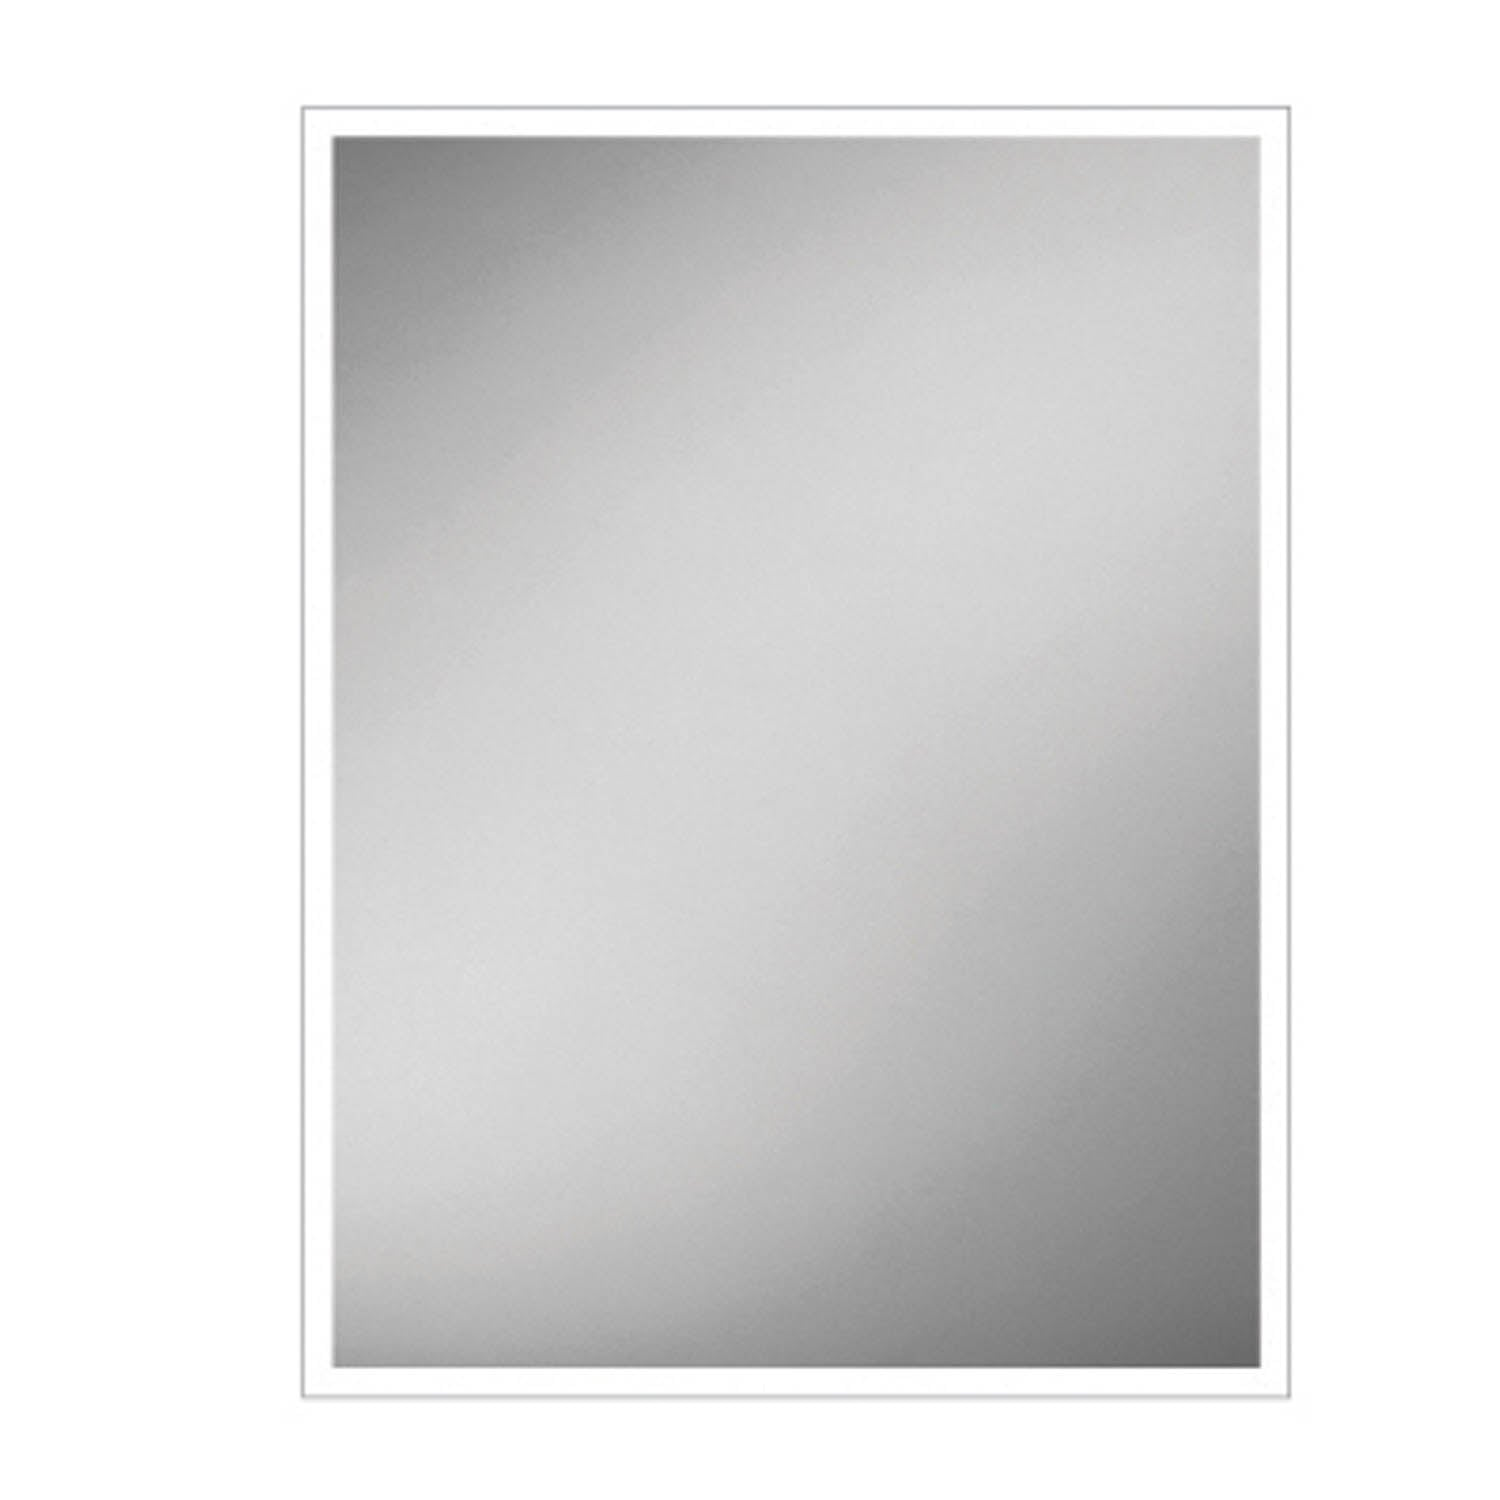 800x600mm Front Lit LED Light Mirror on a white background